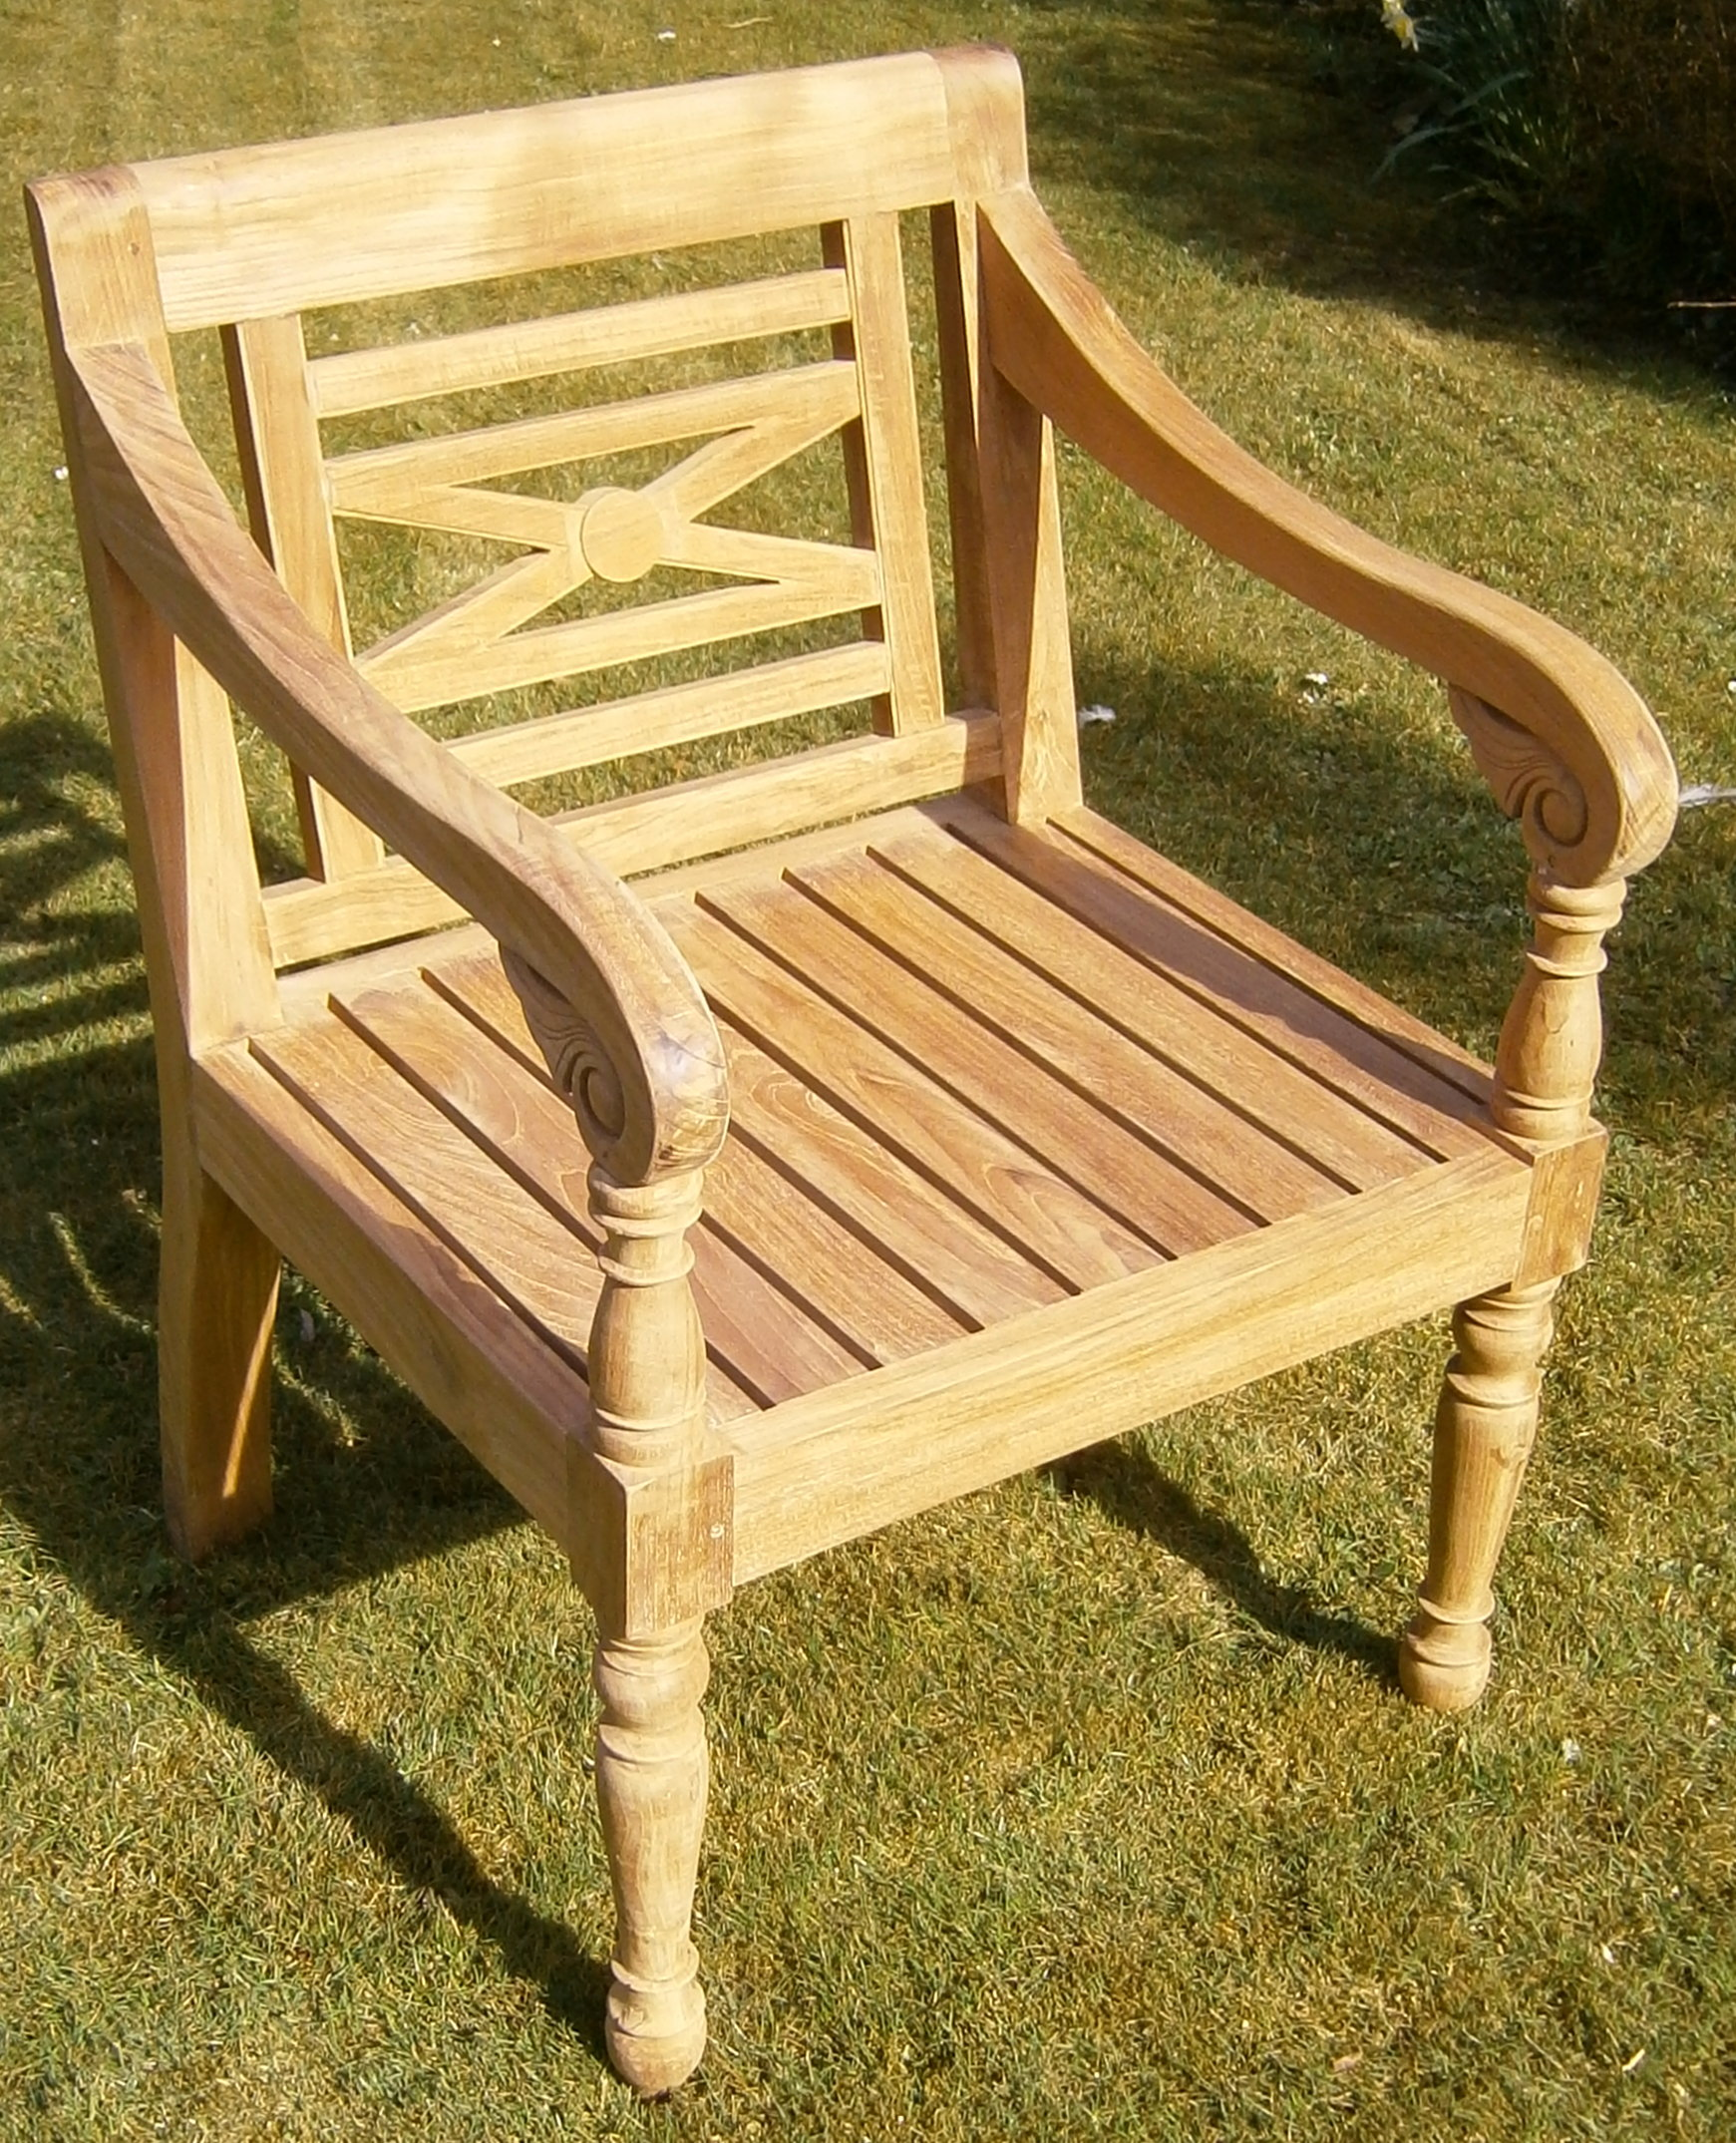 Teak garden furniture product review site latest for Teak outdoor furniture